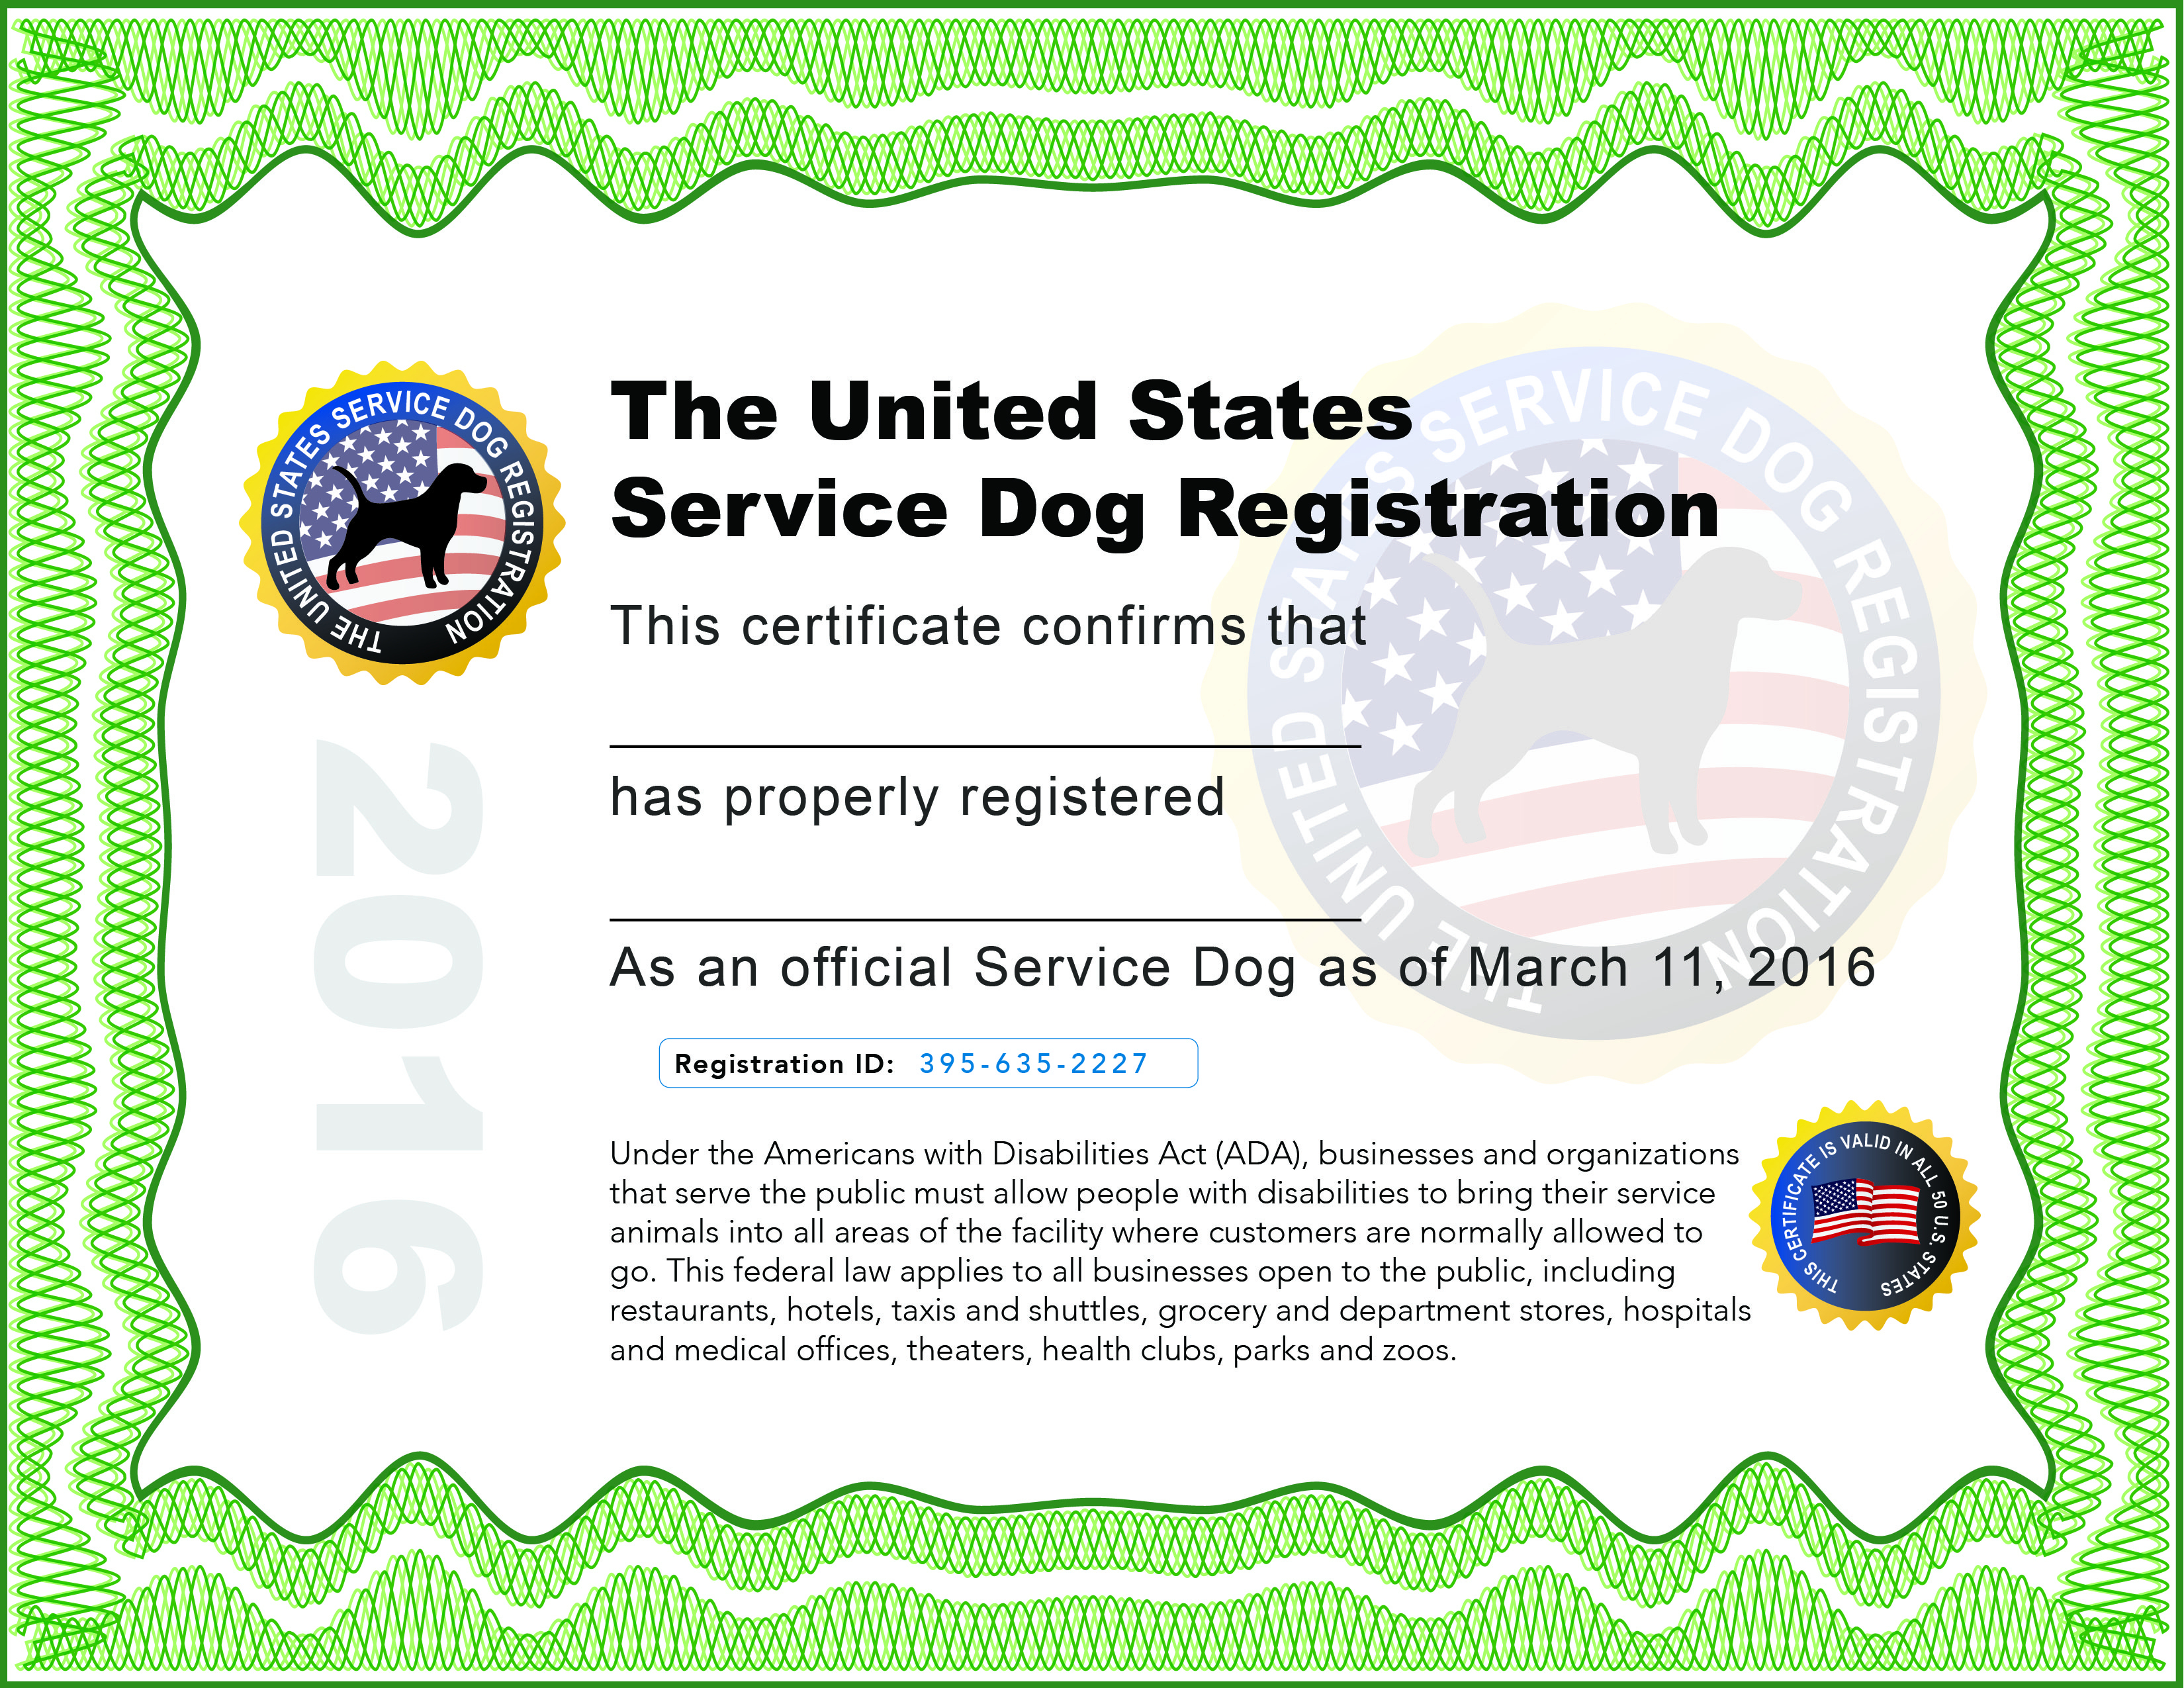 Printable Service Dog Certificate (67+ Images In Collection) Page 1 - Free Printable Service Dog